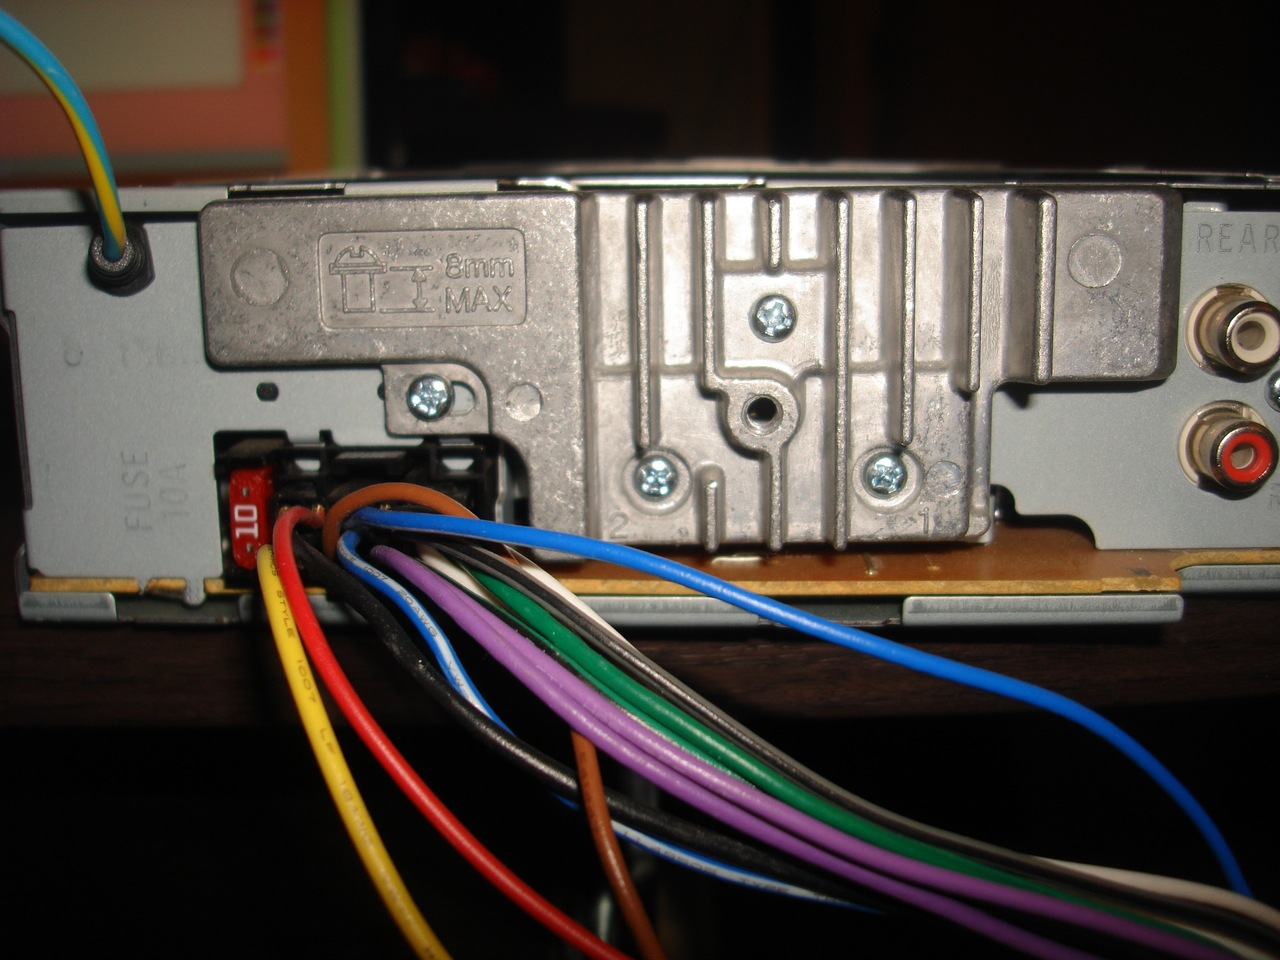 Connecting A Sony Car Radio With Your Own Hands Video Installation Audio Wiring Management However When You Turn The Key Electrical Circuit Opens For Fraction Of Second Which Is Sometimes Enough To Erase All Settings From